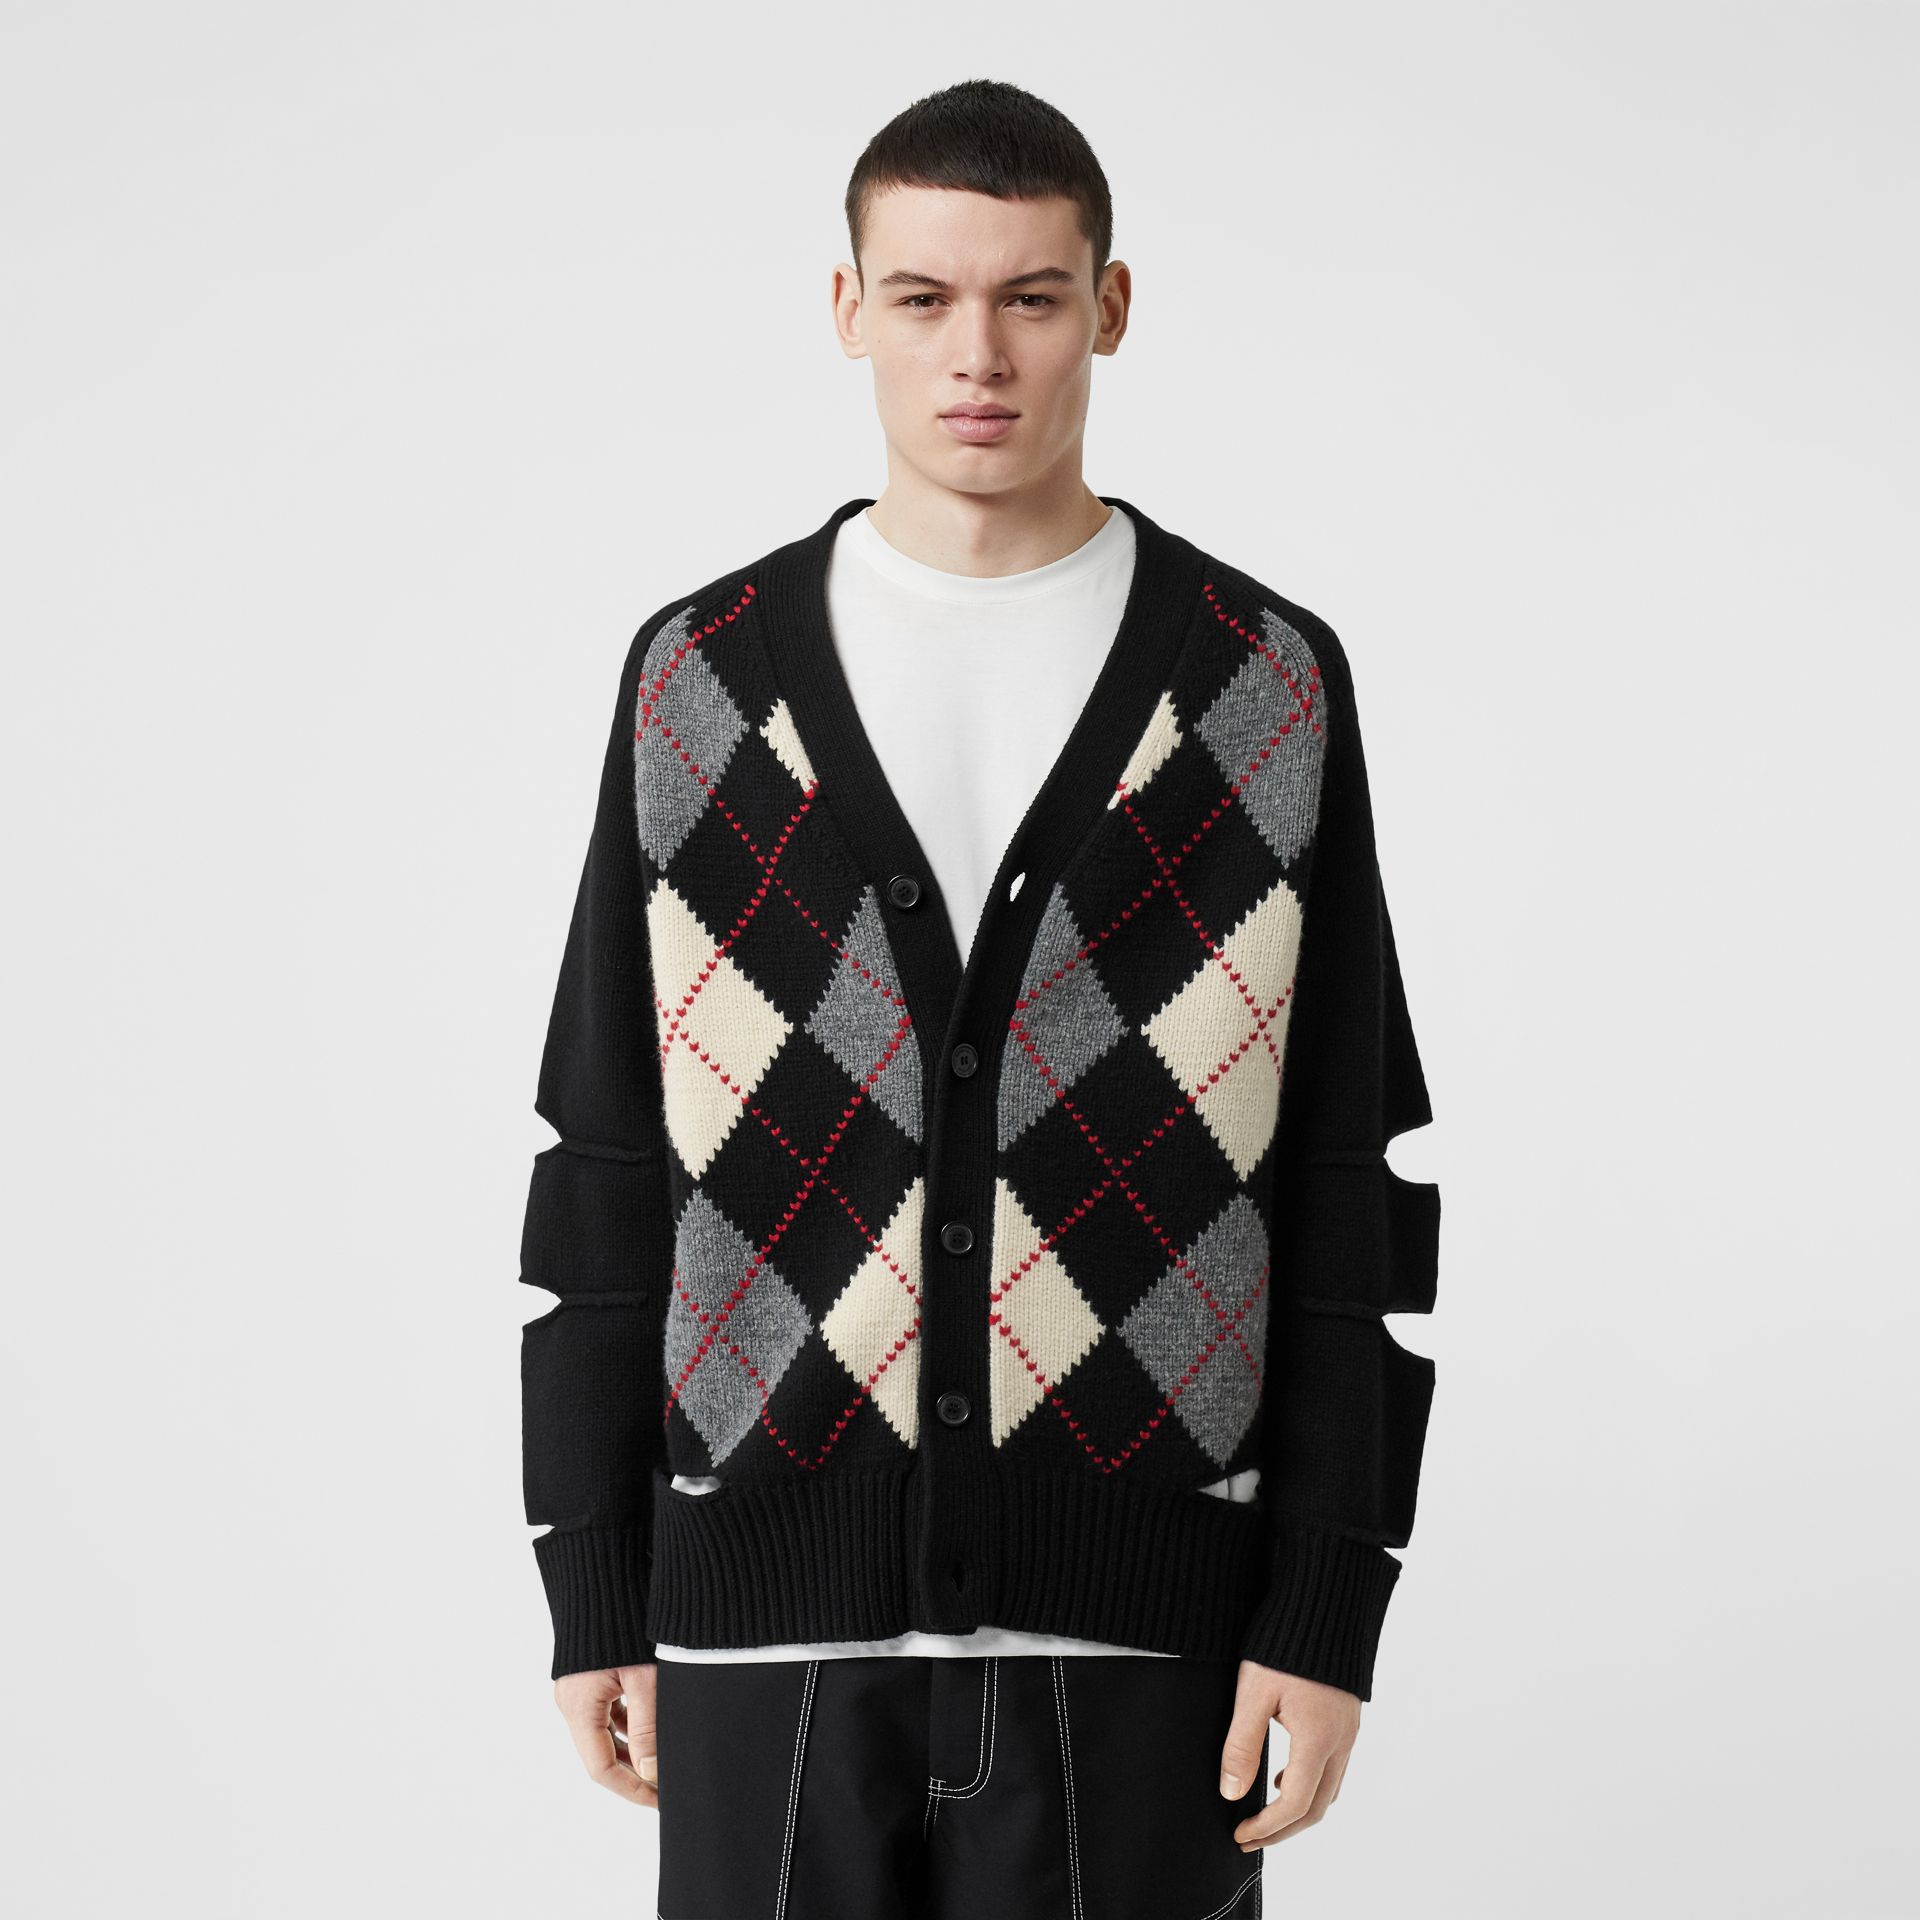 Cut-out Detail Merino Wool Cashmere Cardigan in Black - Men | Burberry - gallery image 5